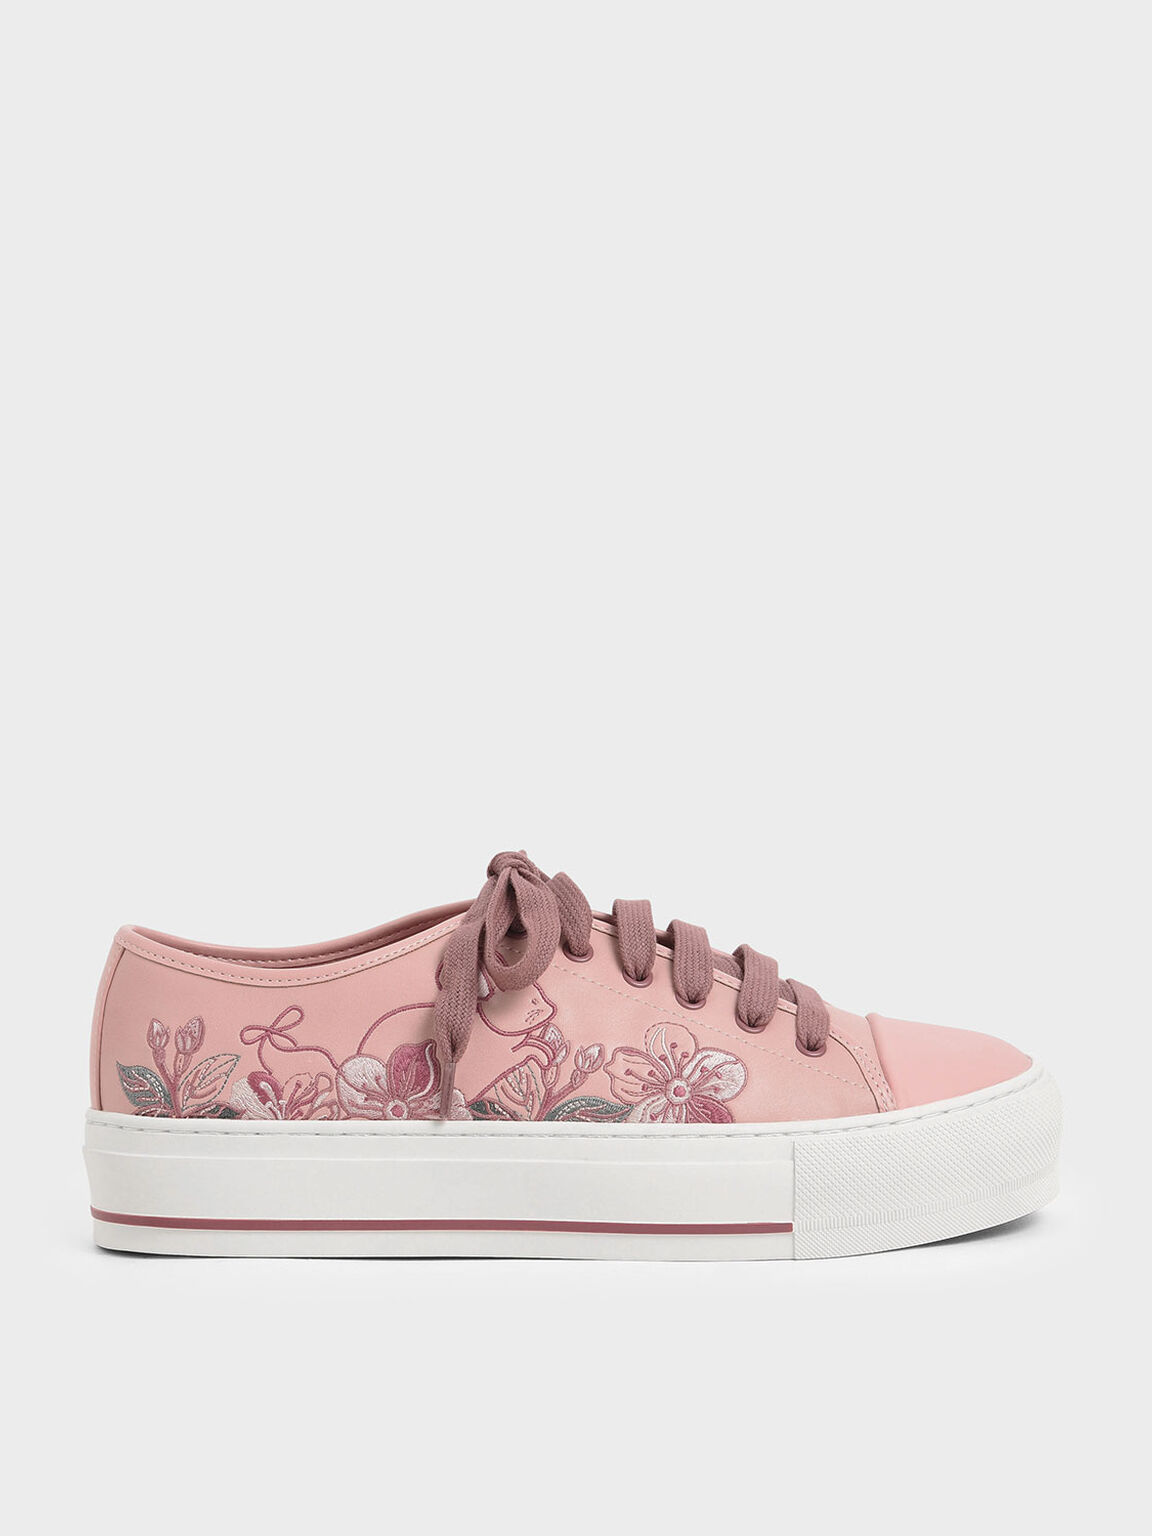 Embroidered Sneakers, Pink, hi-res